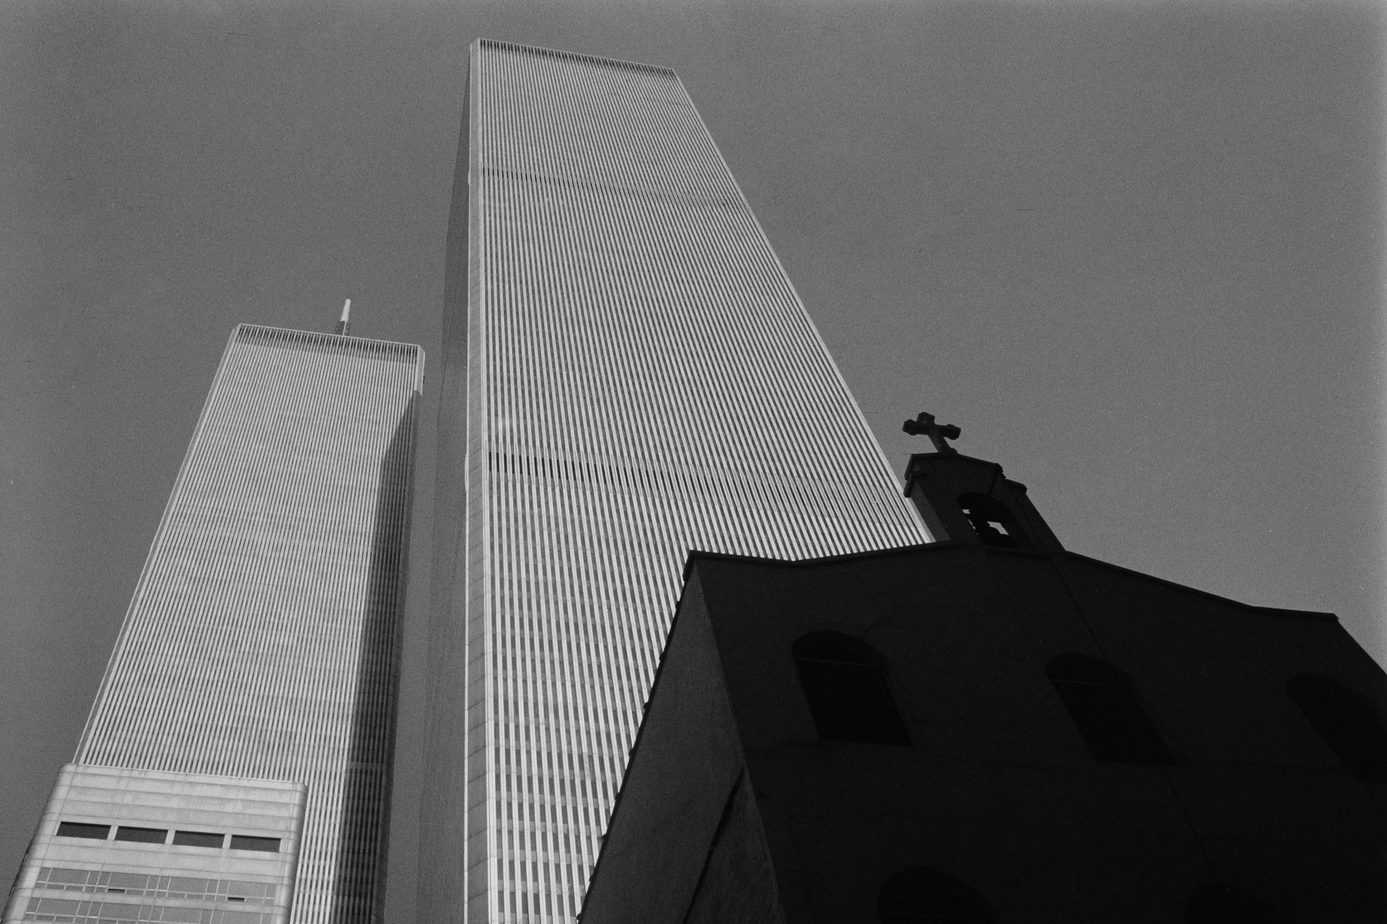 Remembering 9/11: From Rubble to Redemption